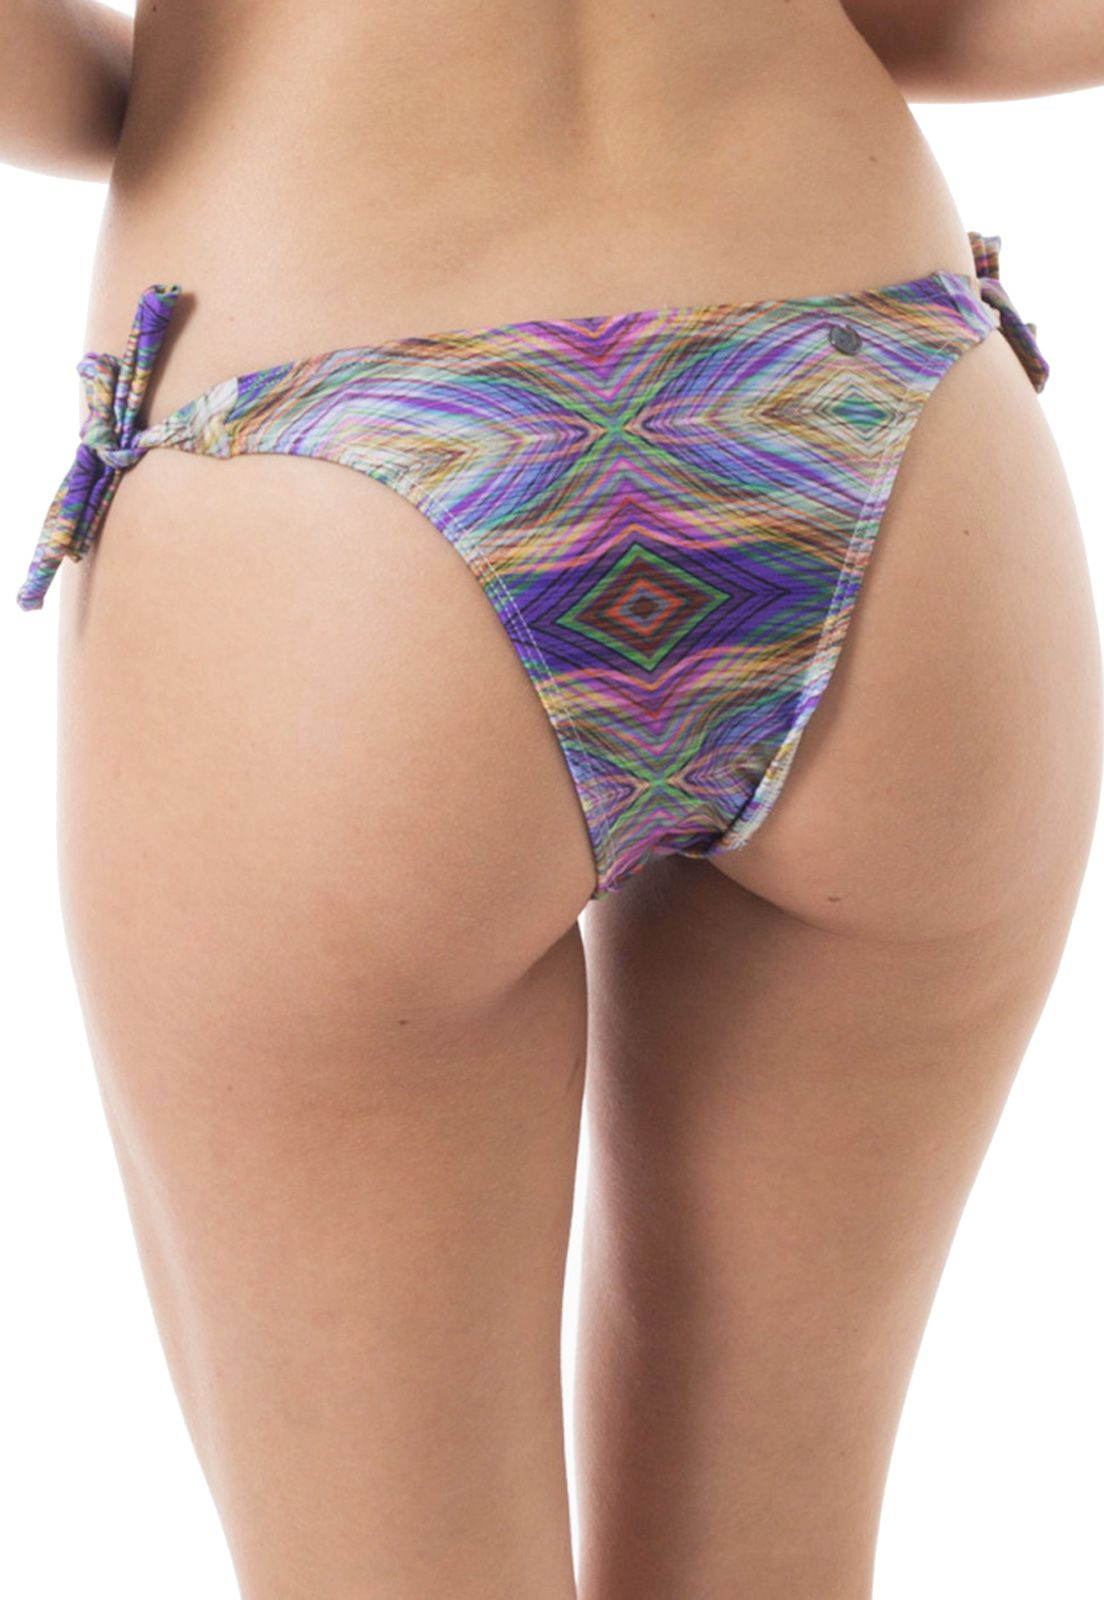 Biquíni Bottom Lacinho Flavia Donadio Beachwear Sunset-1 Estampado Lilás